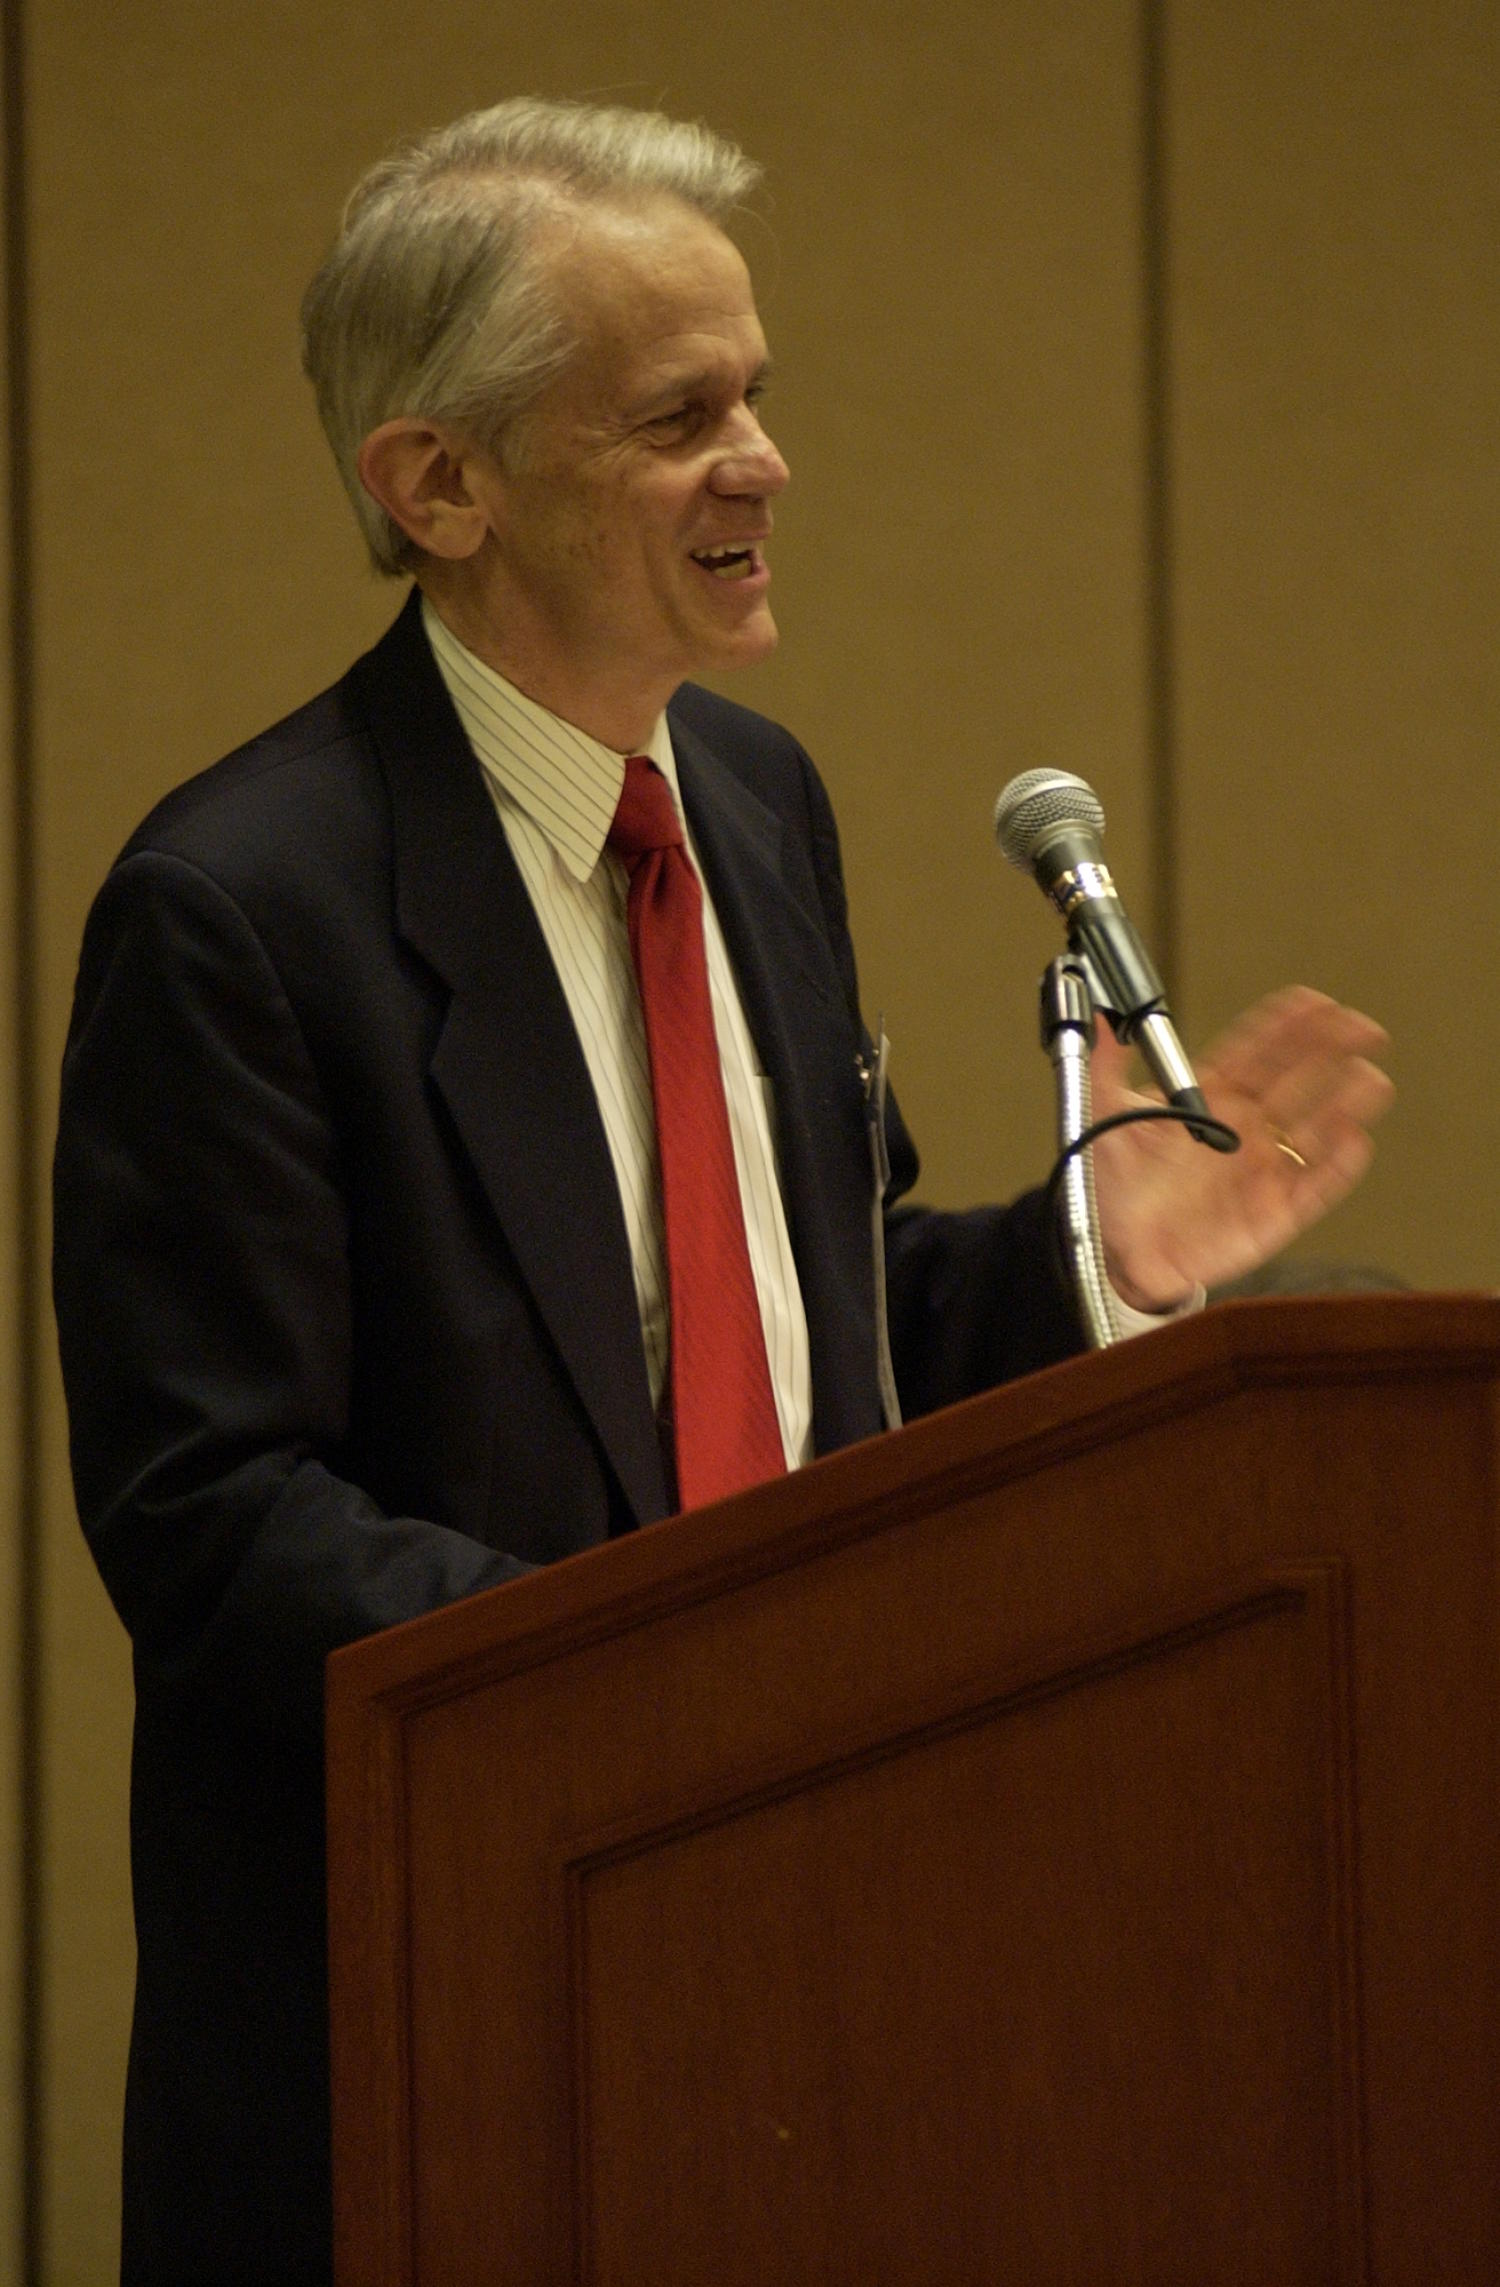 [Unidentified speaker at TDNA conference], Photograph of an unidentified guest speaker attending the 2004 Texas Daily News Association annual conference held in Corpus Christi. The guest is standing at a podium in the conference hall and talking into the microphone addressing the attendees.,